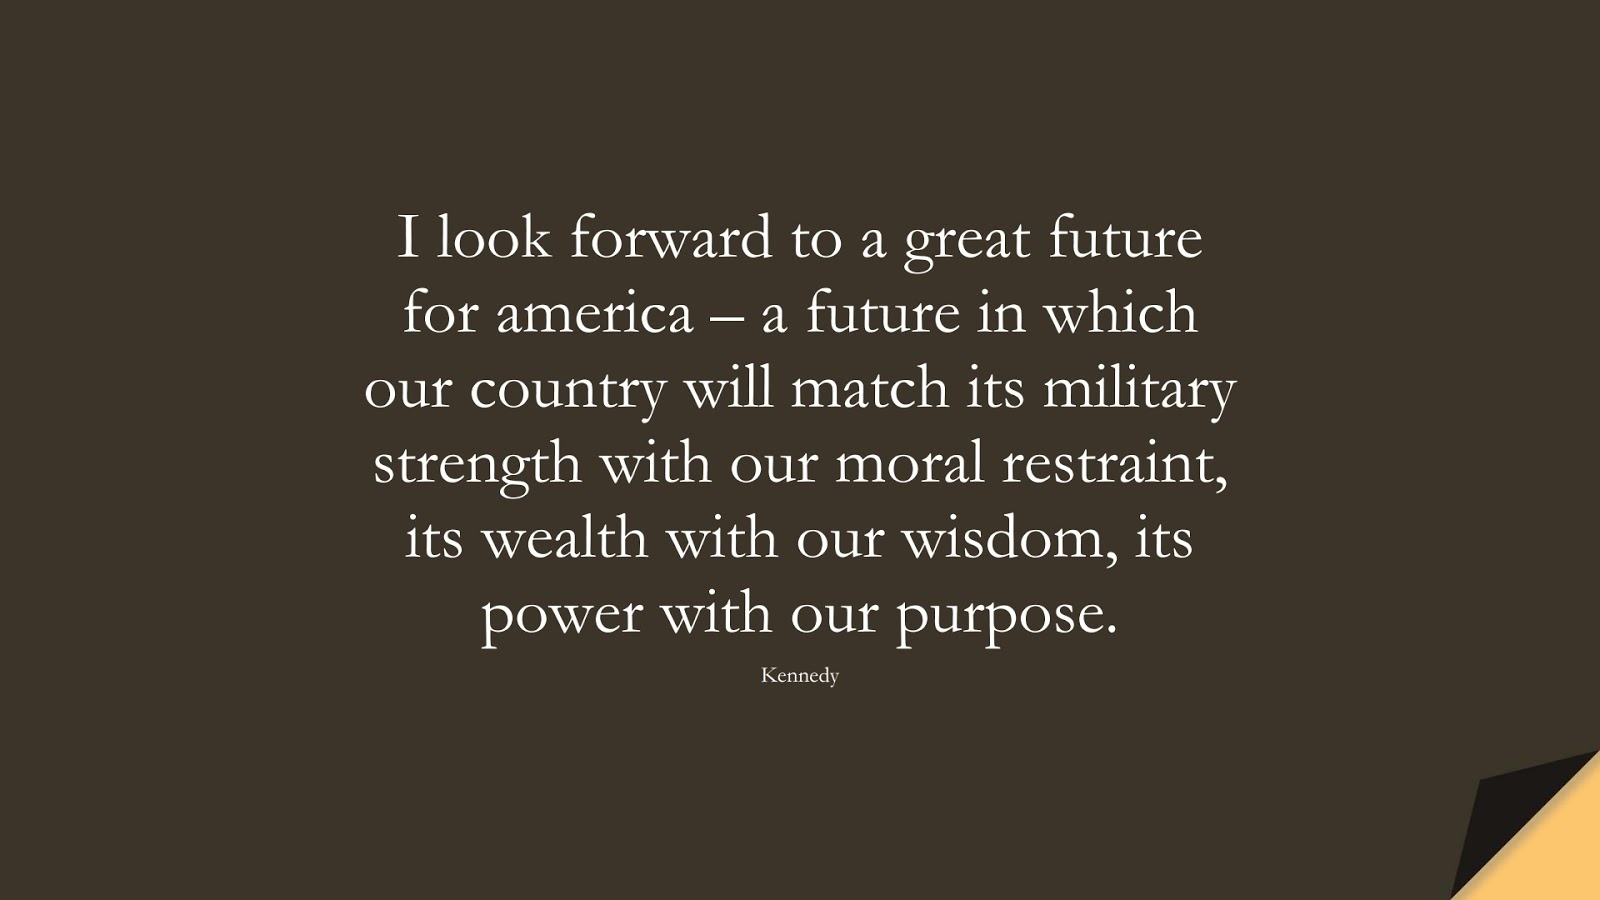 I look forward to a great future for america – a future in which our country will match its military strength with our moral restraint, its wealth with our wisdom, its power with our purpose. (Kennedy);  #WordsofWisdom